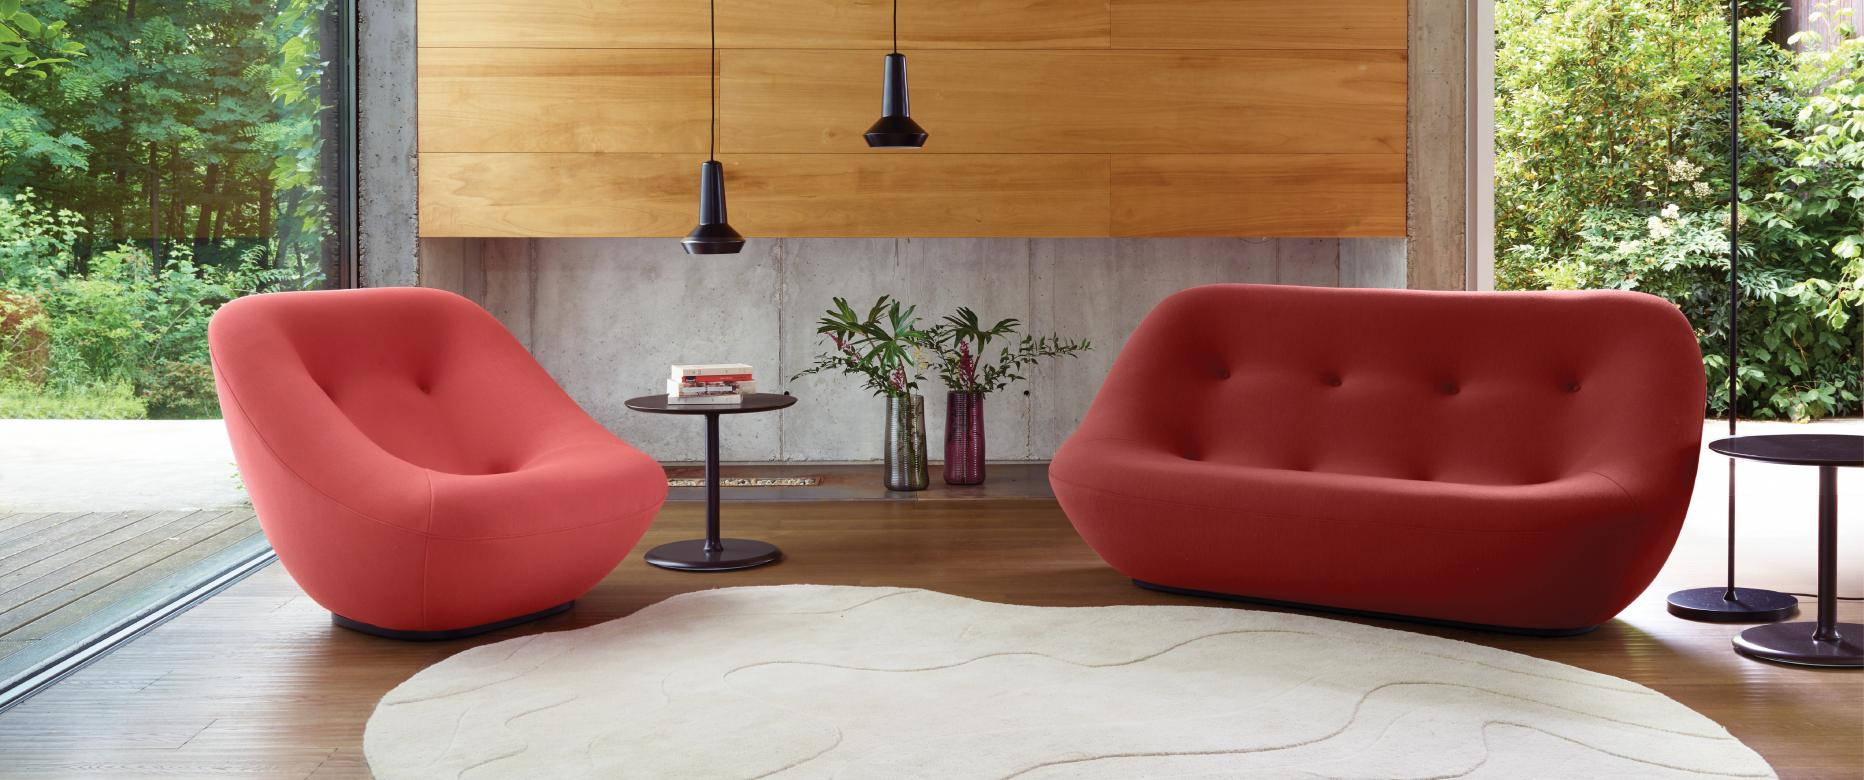 Arte Furniture Showroom Yerevan Ligne Roset Official Site Contemporary High End Furniture